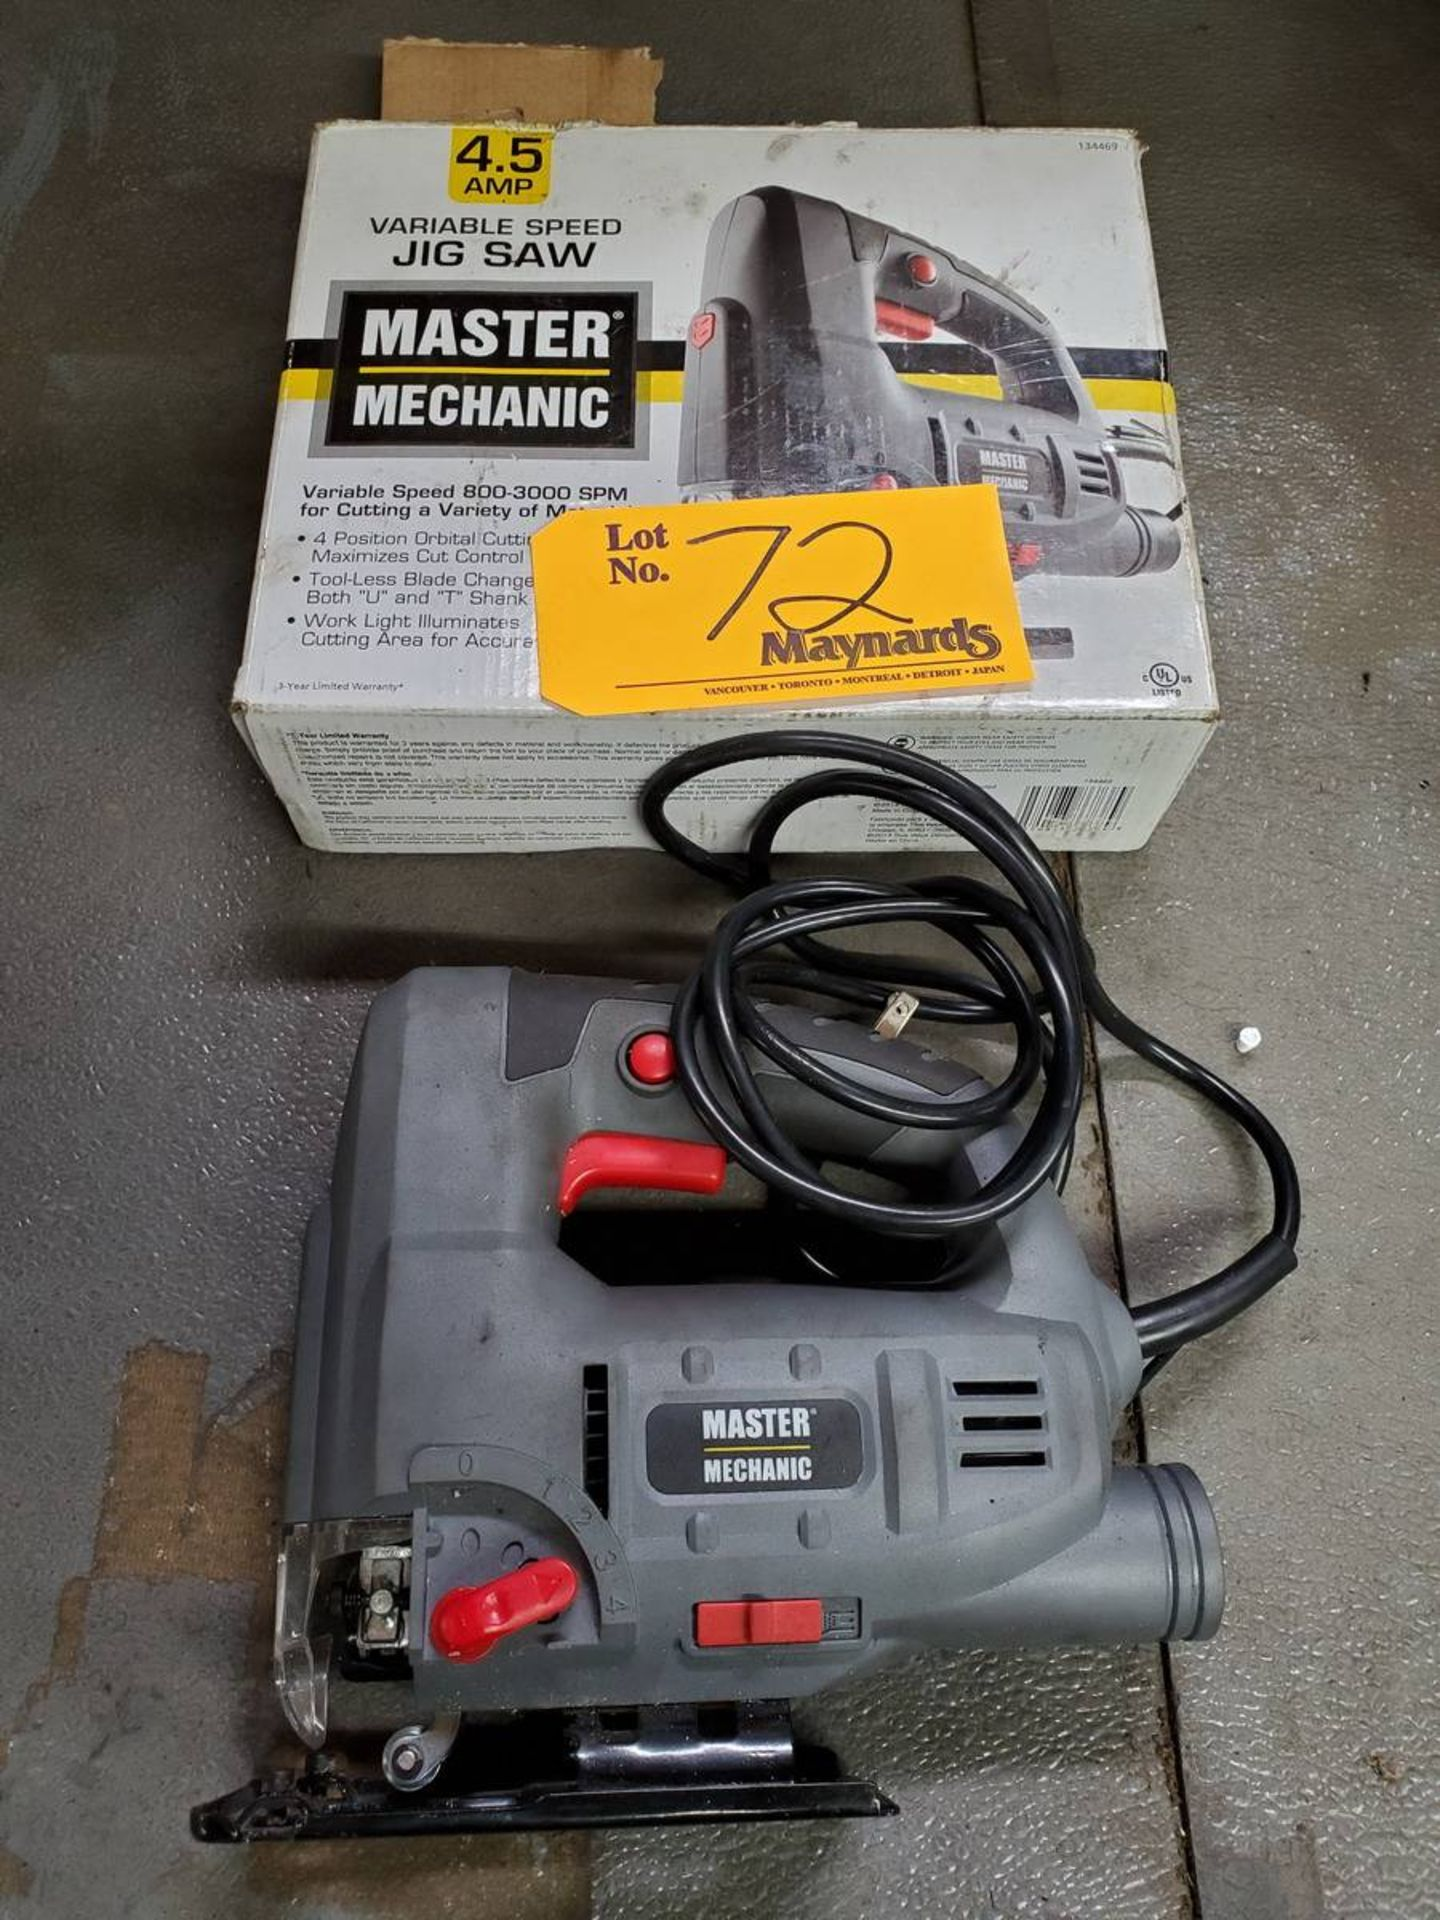 Lot 72 - Master Mechanic Variable Speed Jig Saw